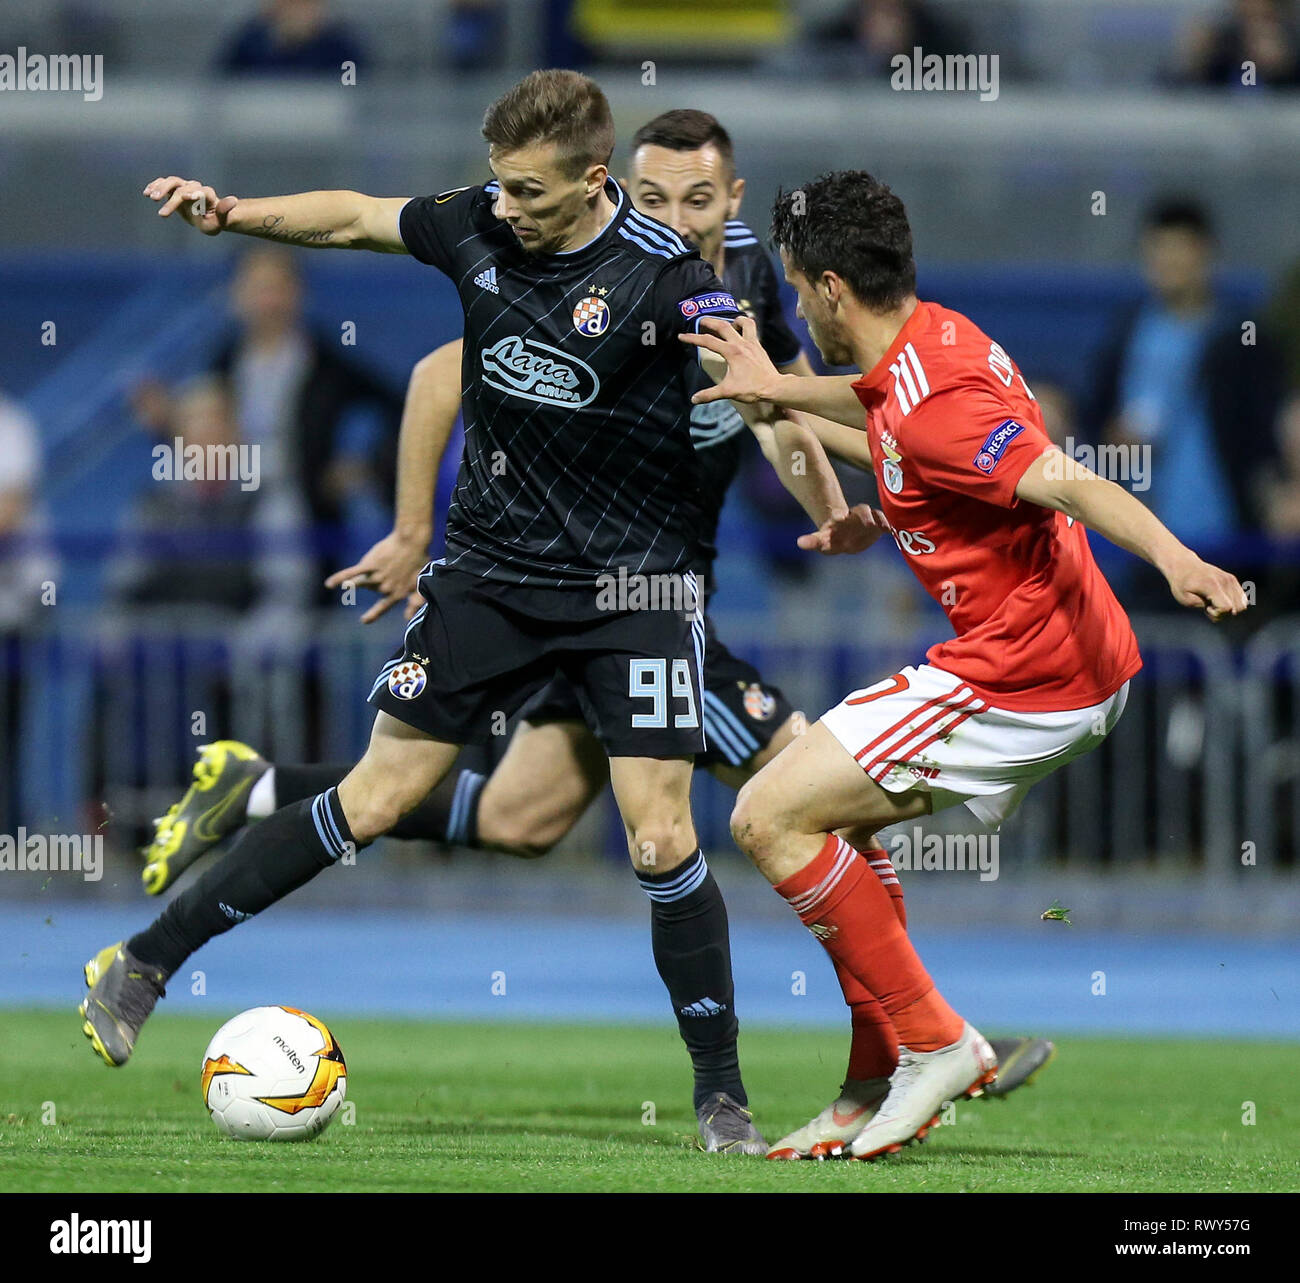 Zagreb Croatia 7th Mar 2019 Mislav Orsic L Of Dinamo Zagreb Vies With Sebastien Corchia Of Benfica During Uefa Europa League Round Of 16 First Leg Match Between Dinamo Zagreb And Benfica